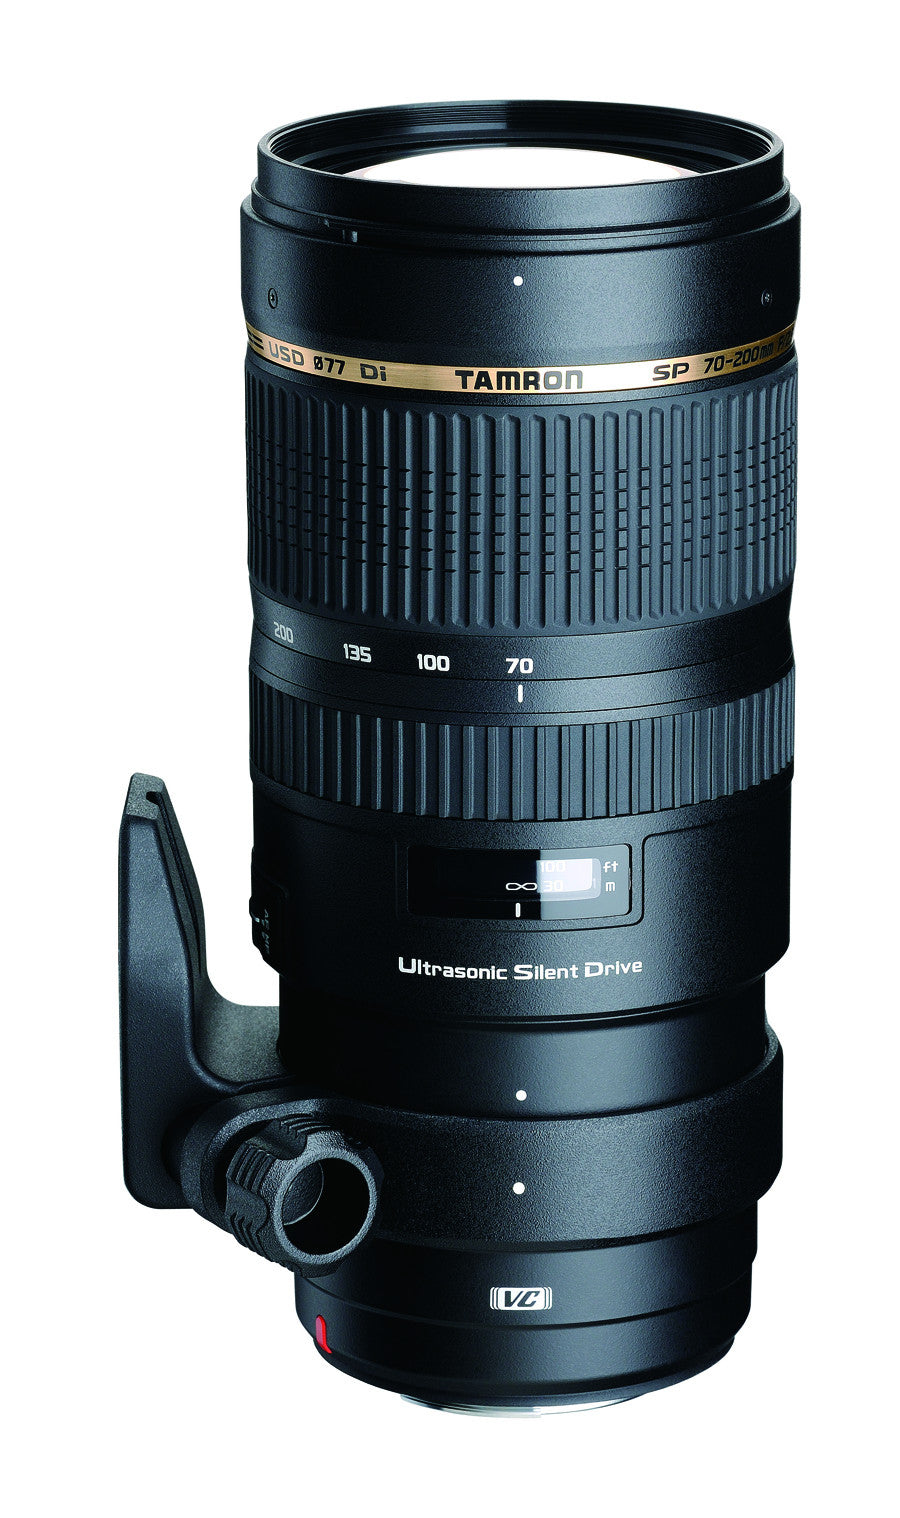 Tamron SP 70-200mm F2.8 VC Canon Mount